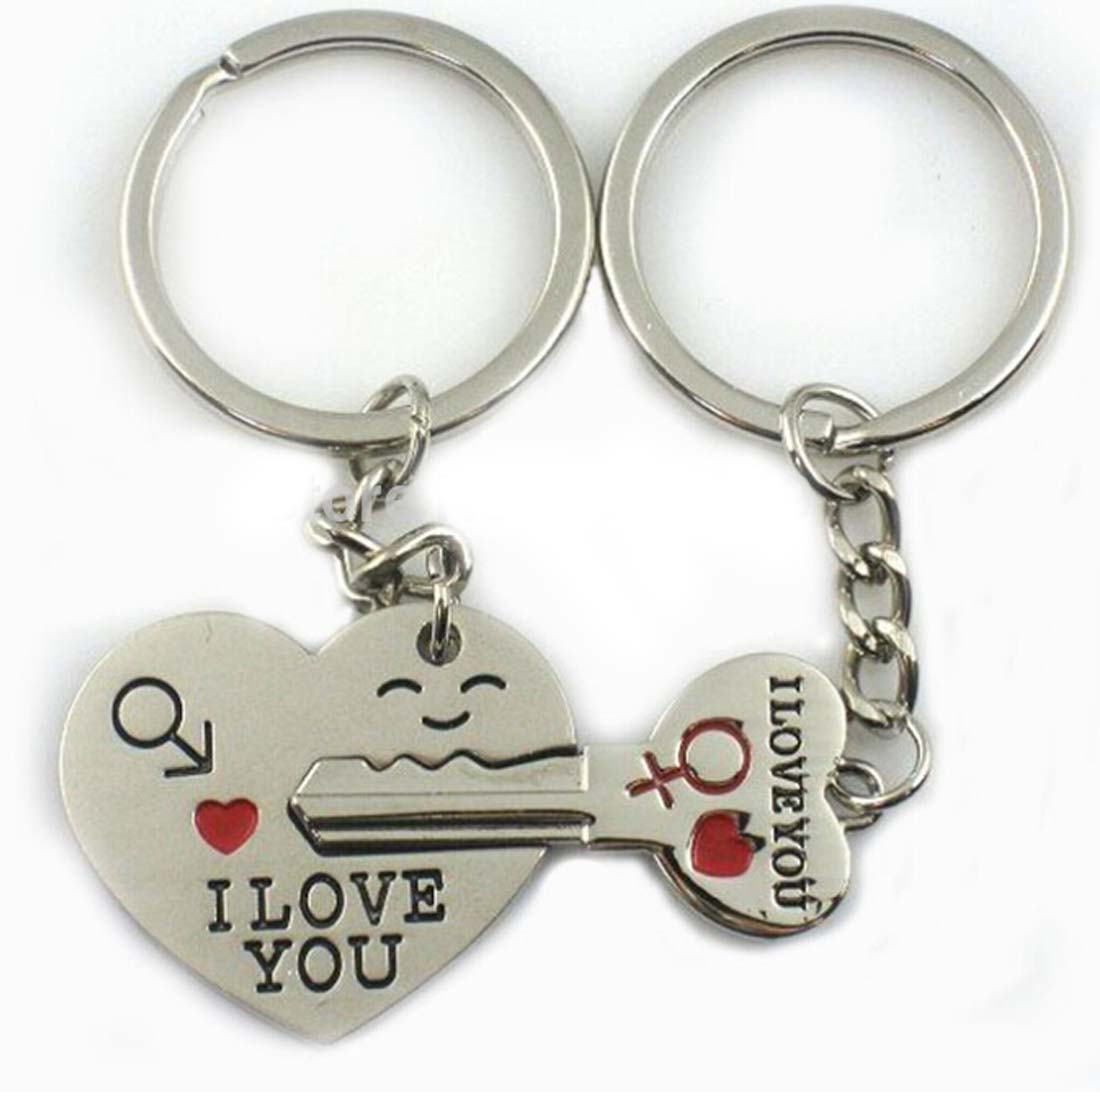 My Heart Keychain Wedding Favors And Gifts Wedding Souvenirs Wedding ...